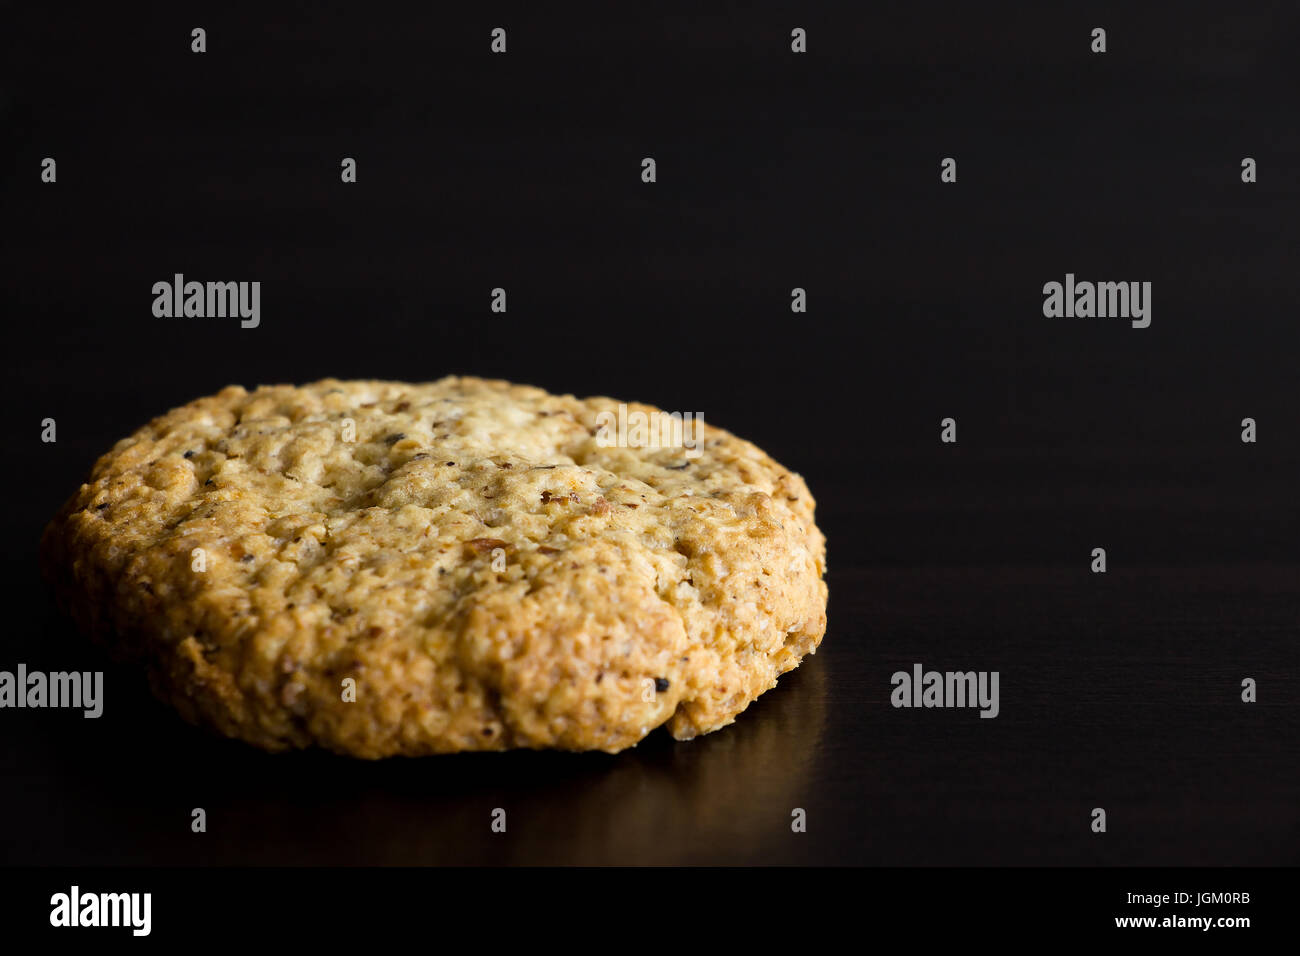 Single homemade oatmeal cookie, healthy dessert, on dark background. Copy space. Selective focus - Stock Image